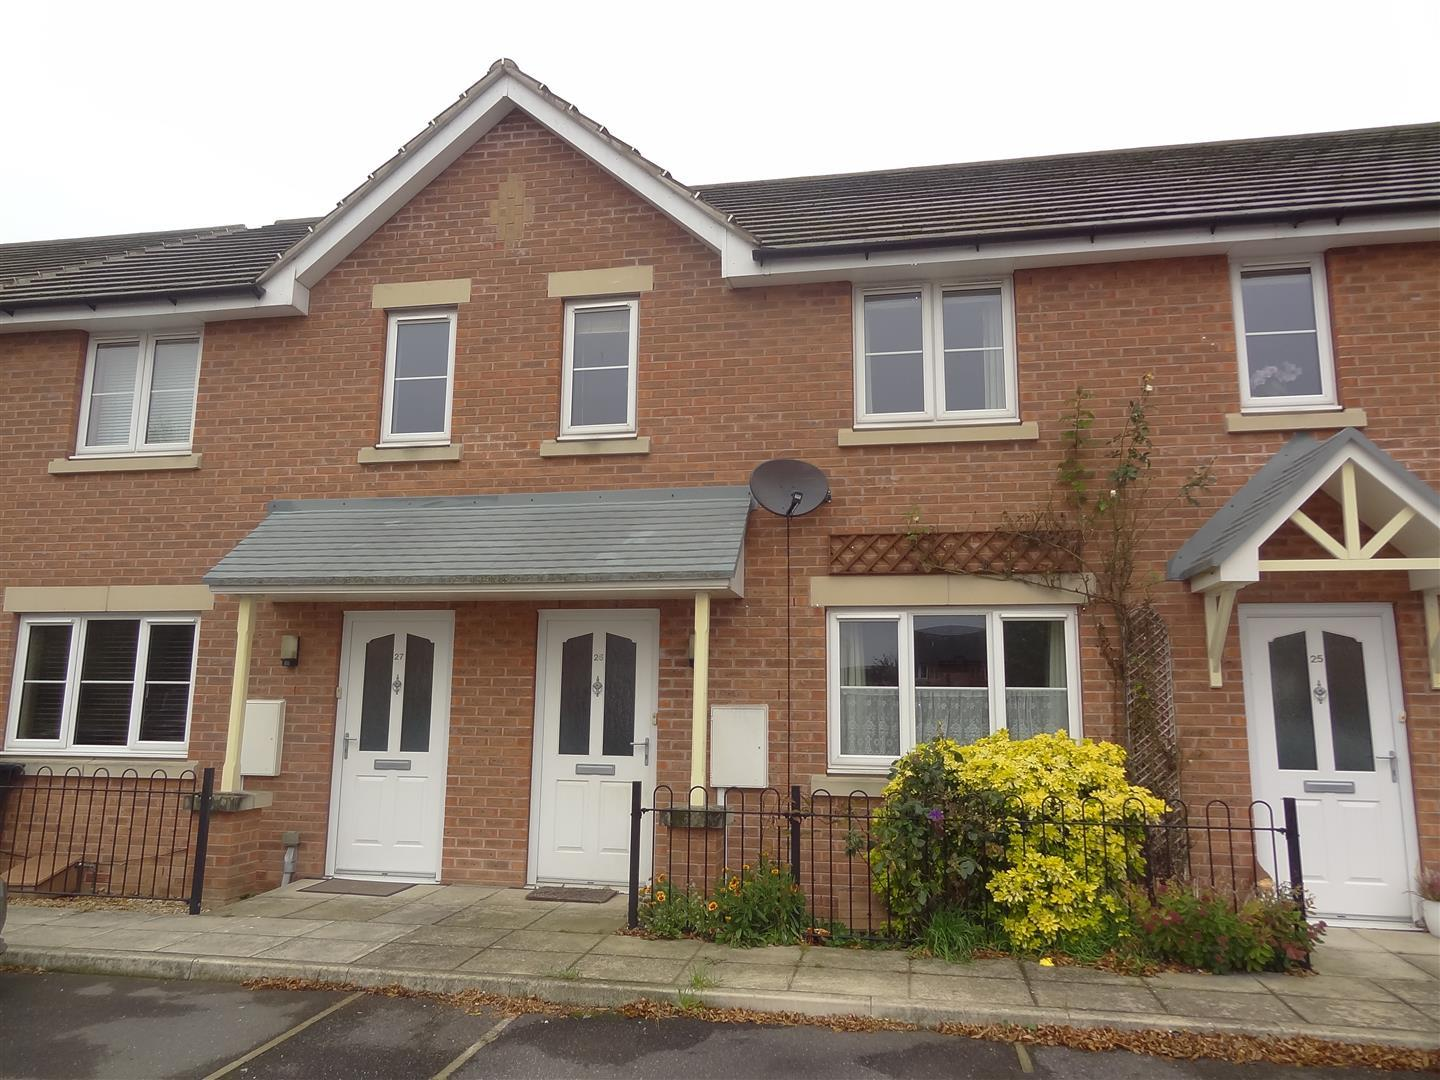 3 Bedrooms Terraced House for sale in Maltkiln Close, Sleaford